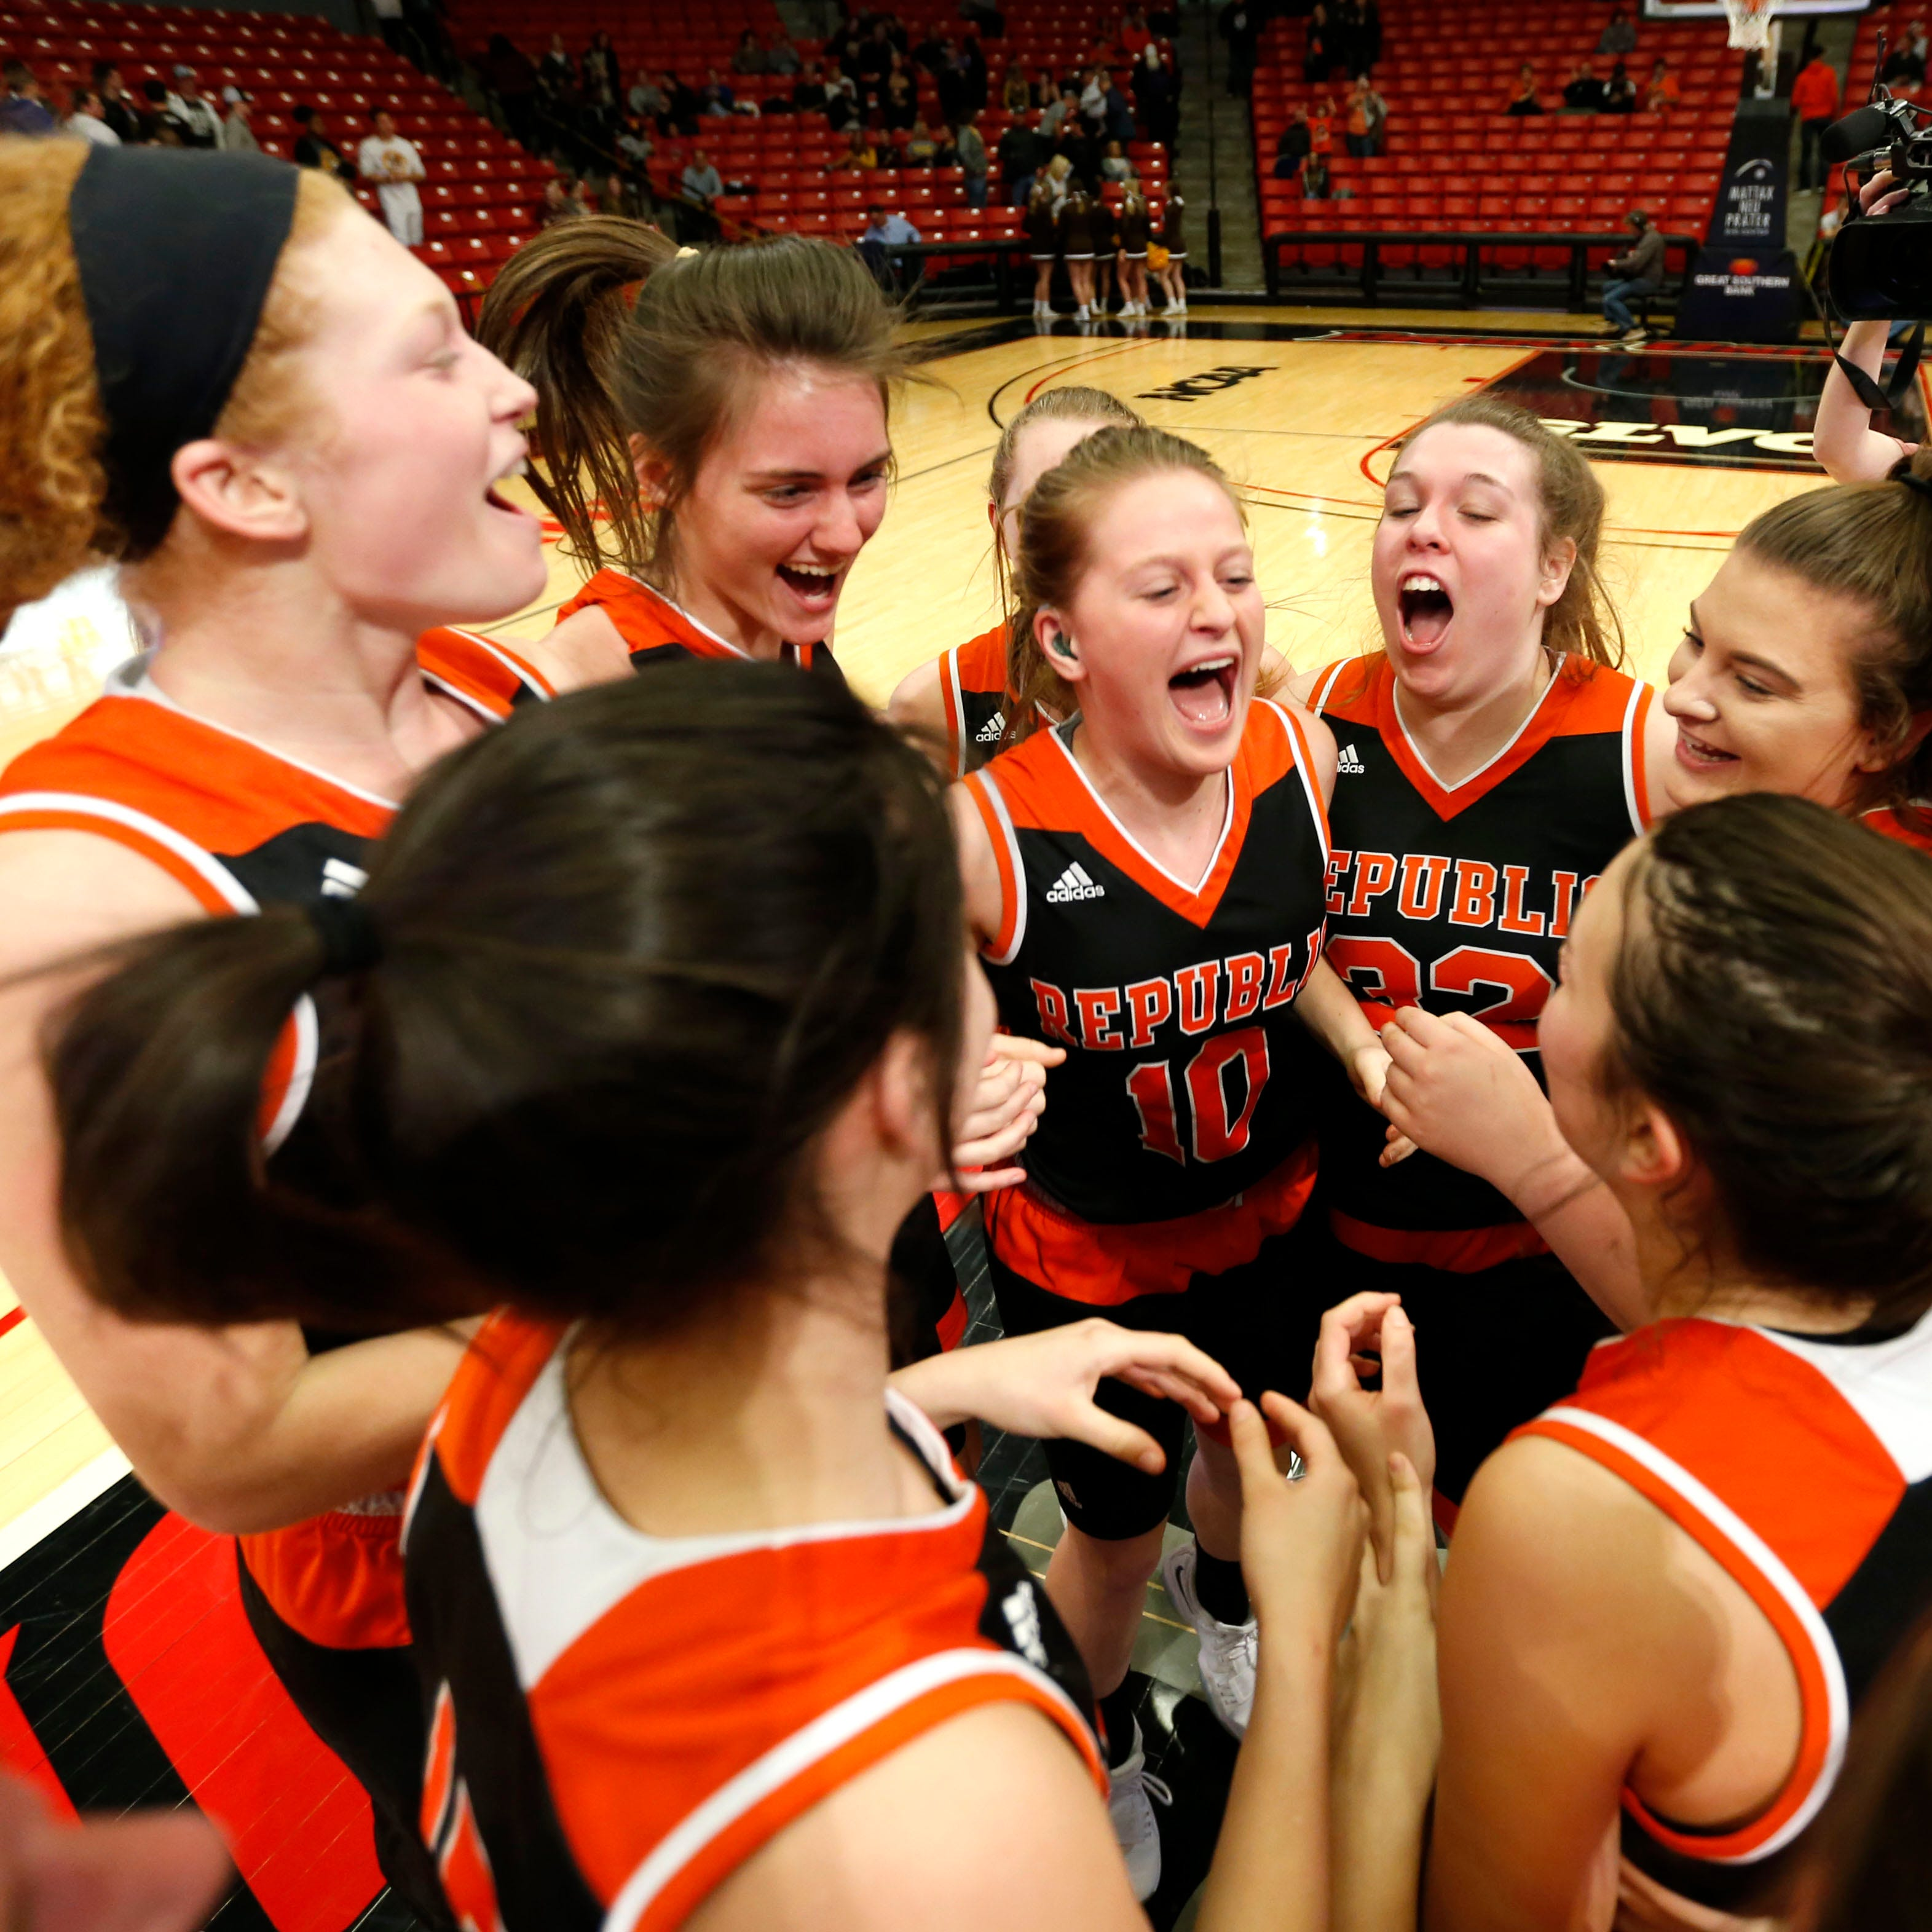 Lady Tigers catch fire to advance to state quarters, end Kickapoo's season